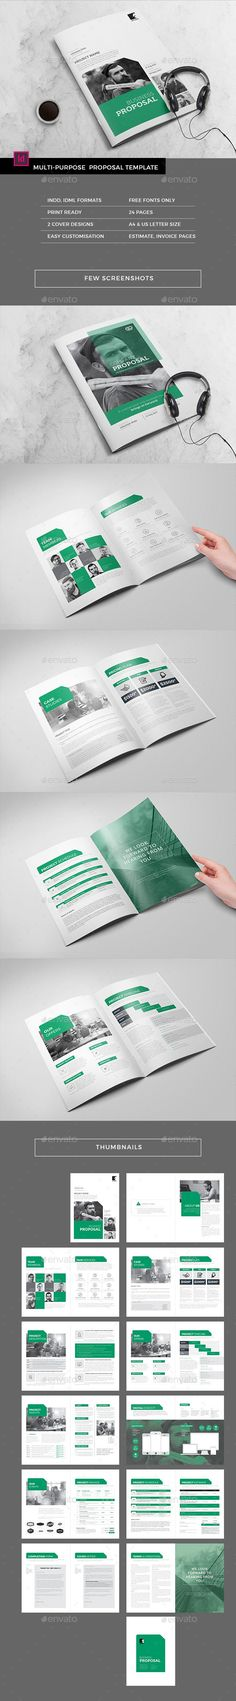 Proposal Proposals, Proposal templates and Brochure template - product sales proposal template